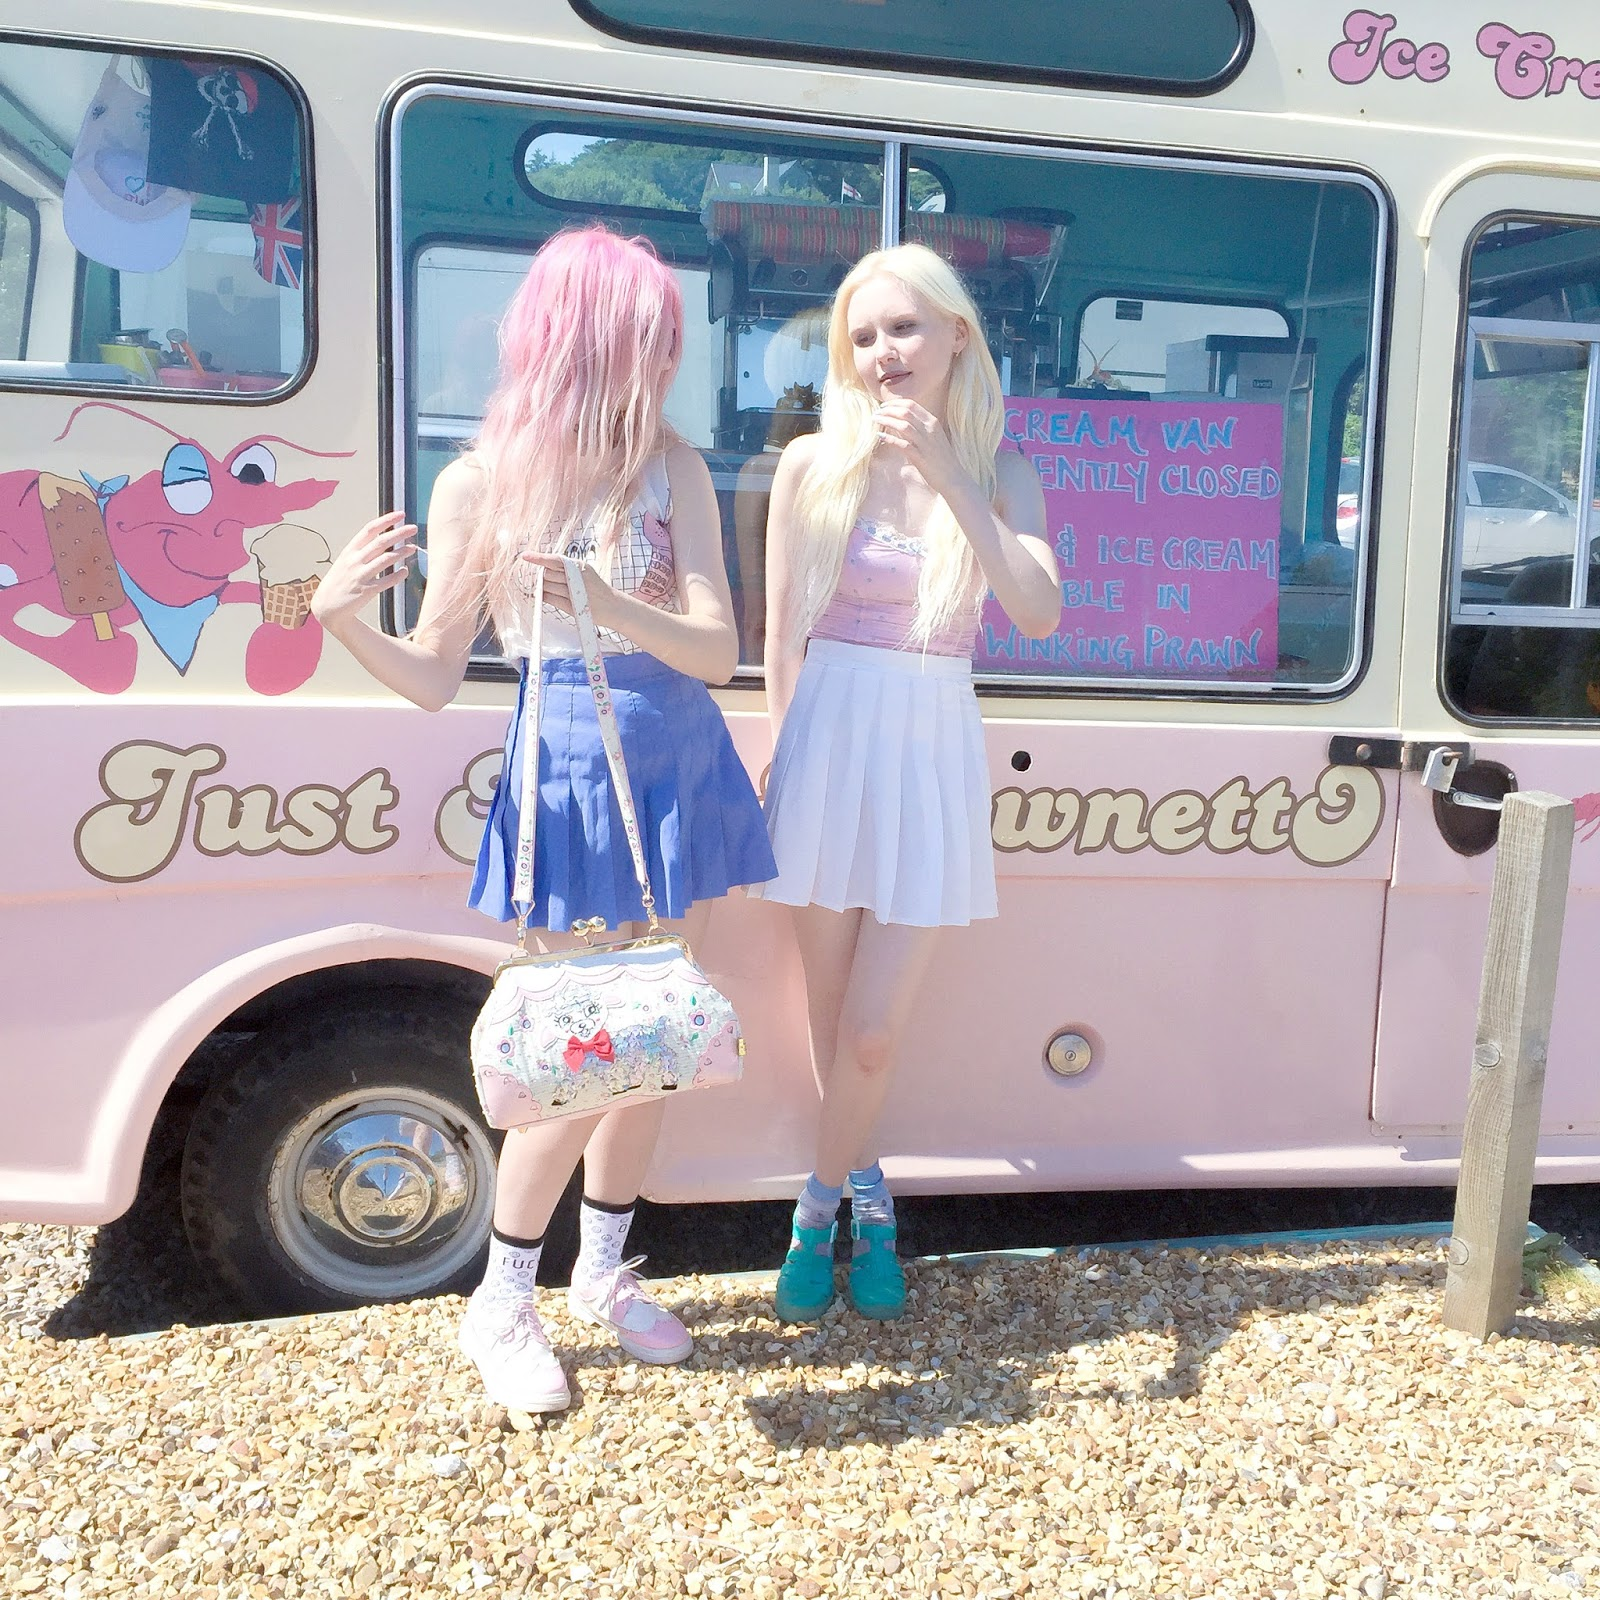 LETS STAND BY THE VINTAGE ICECREAM VAN